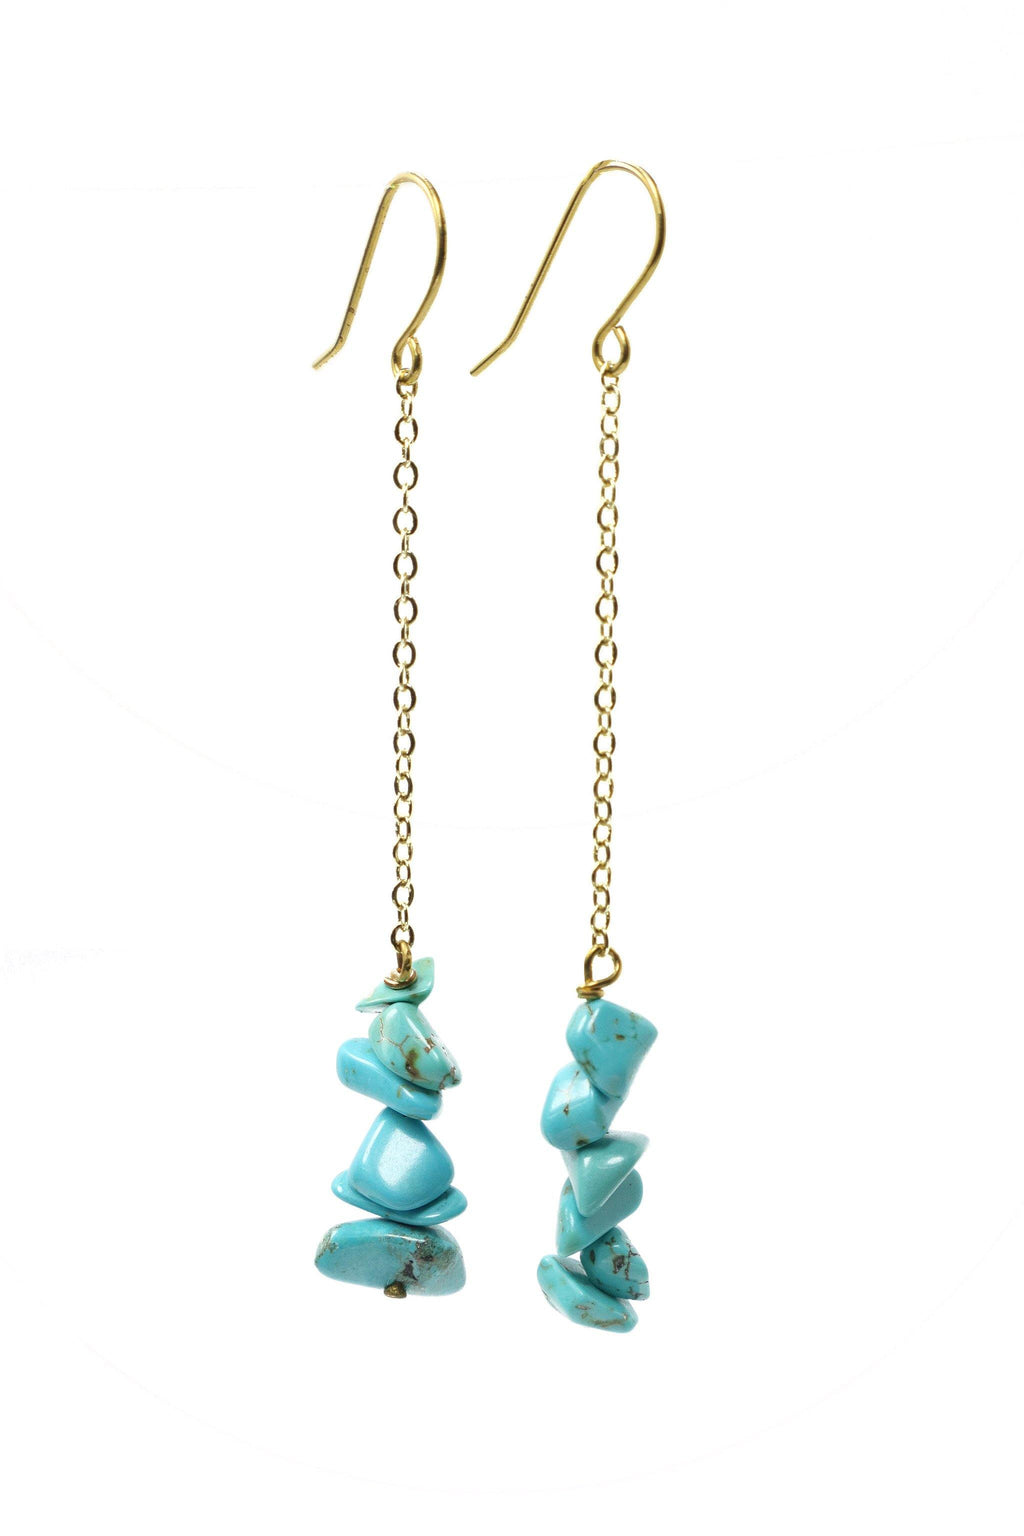 These stacked stone earrings feature a beautiful turquoise chip gemstone on a gold plated chain with gold plated hooks